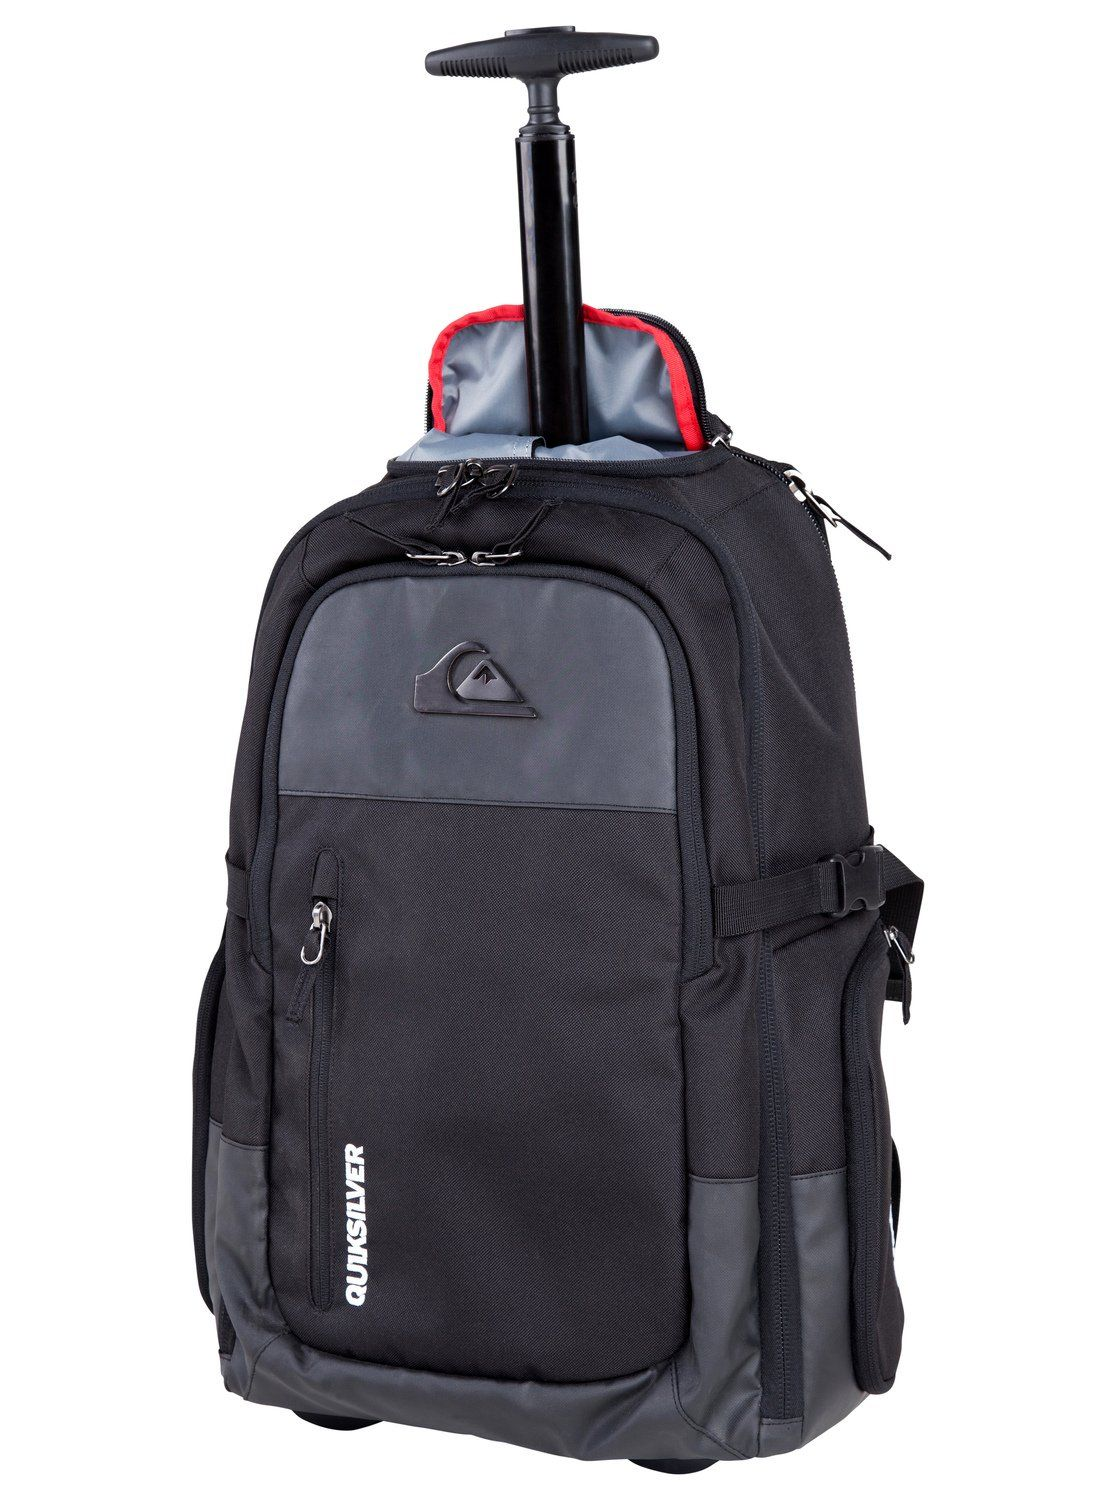 77d745eff Quiksilver Kelly Slater - Travel Pack ...one of my favorite backpack ...